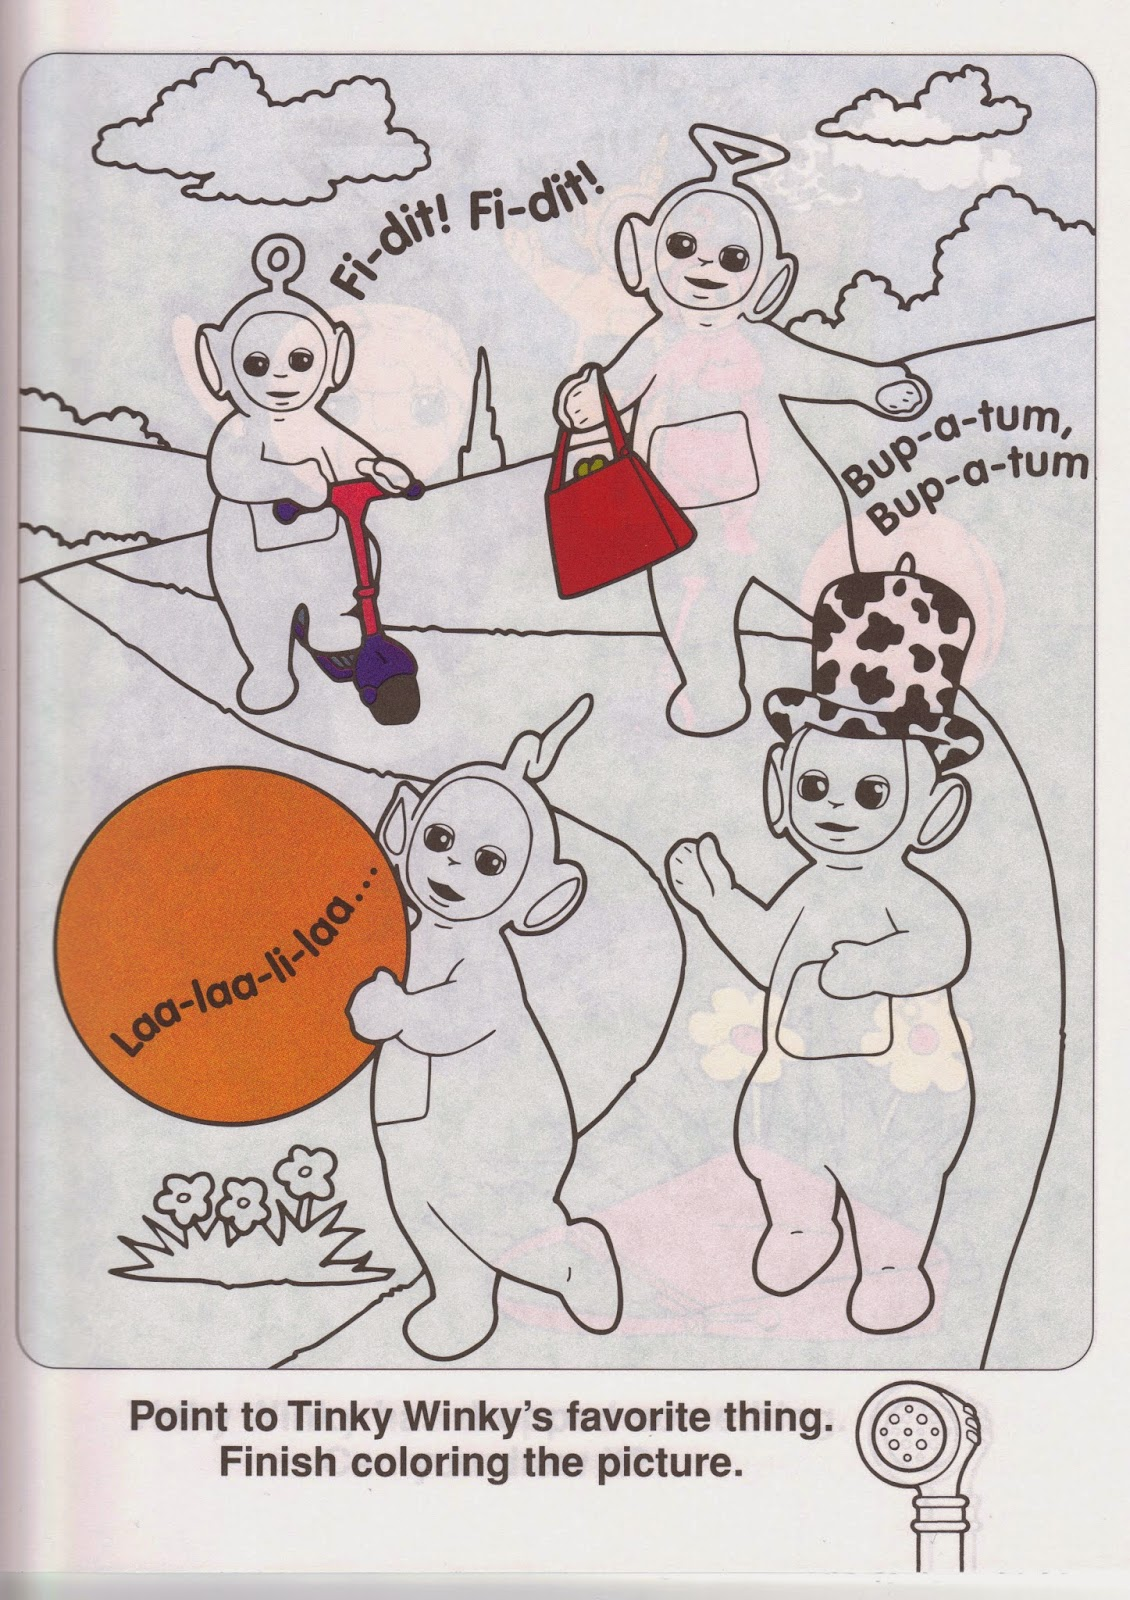 Tinky Winky Coloring Pages Ponder Why Tinky Winky is